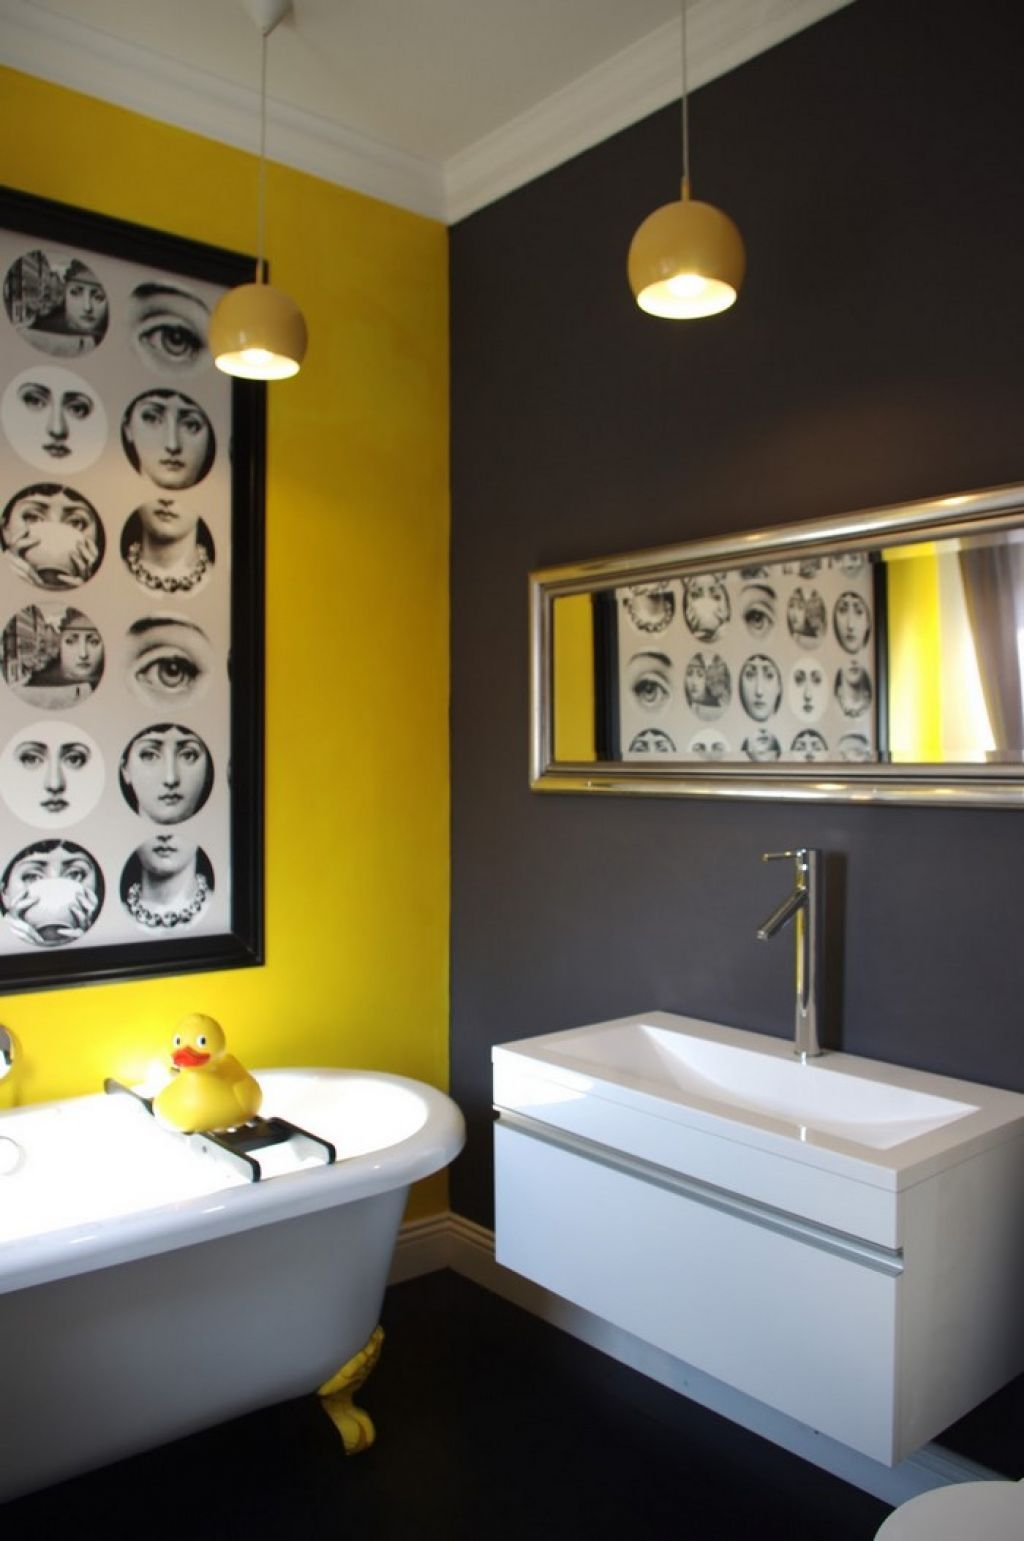 Bathroom With Yellow Grey Wall Colors | Remodeling costs, Wall ...